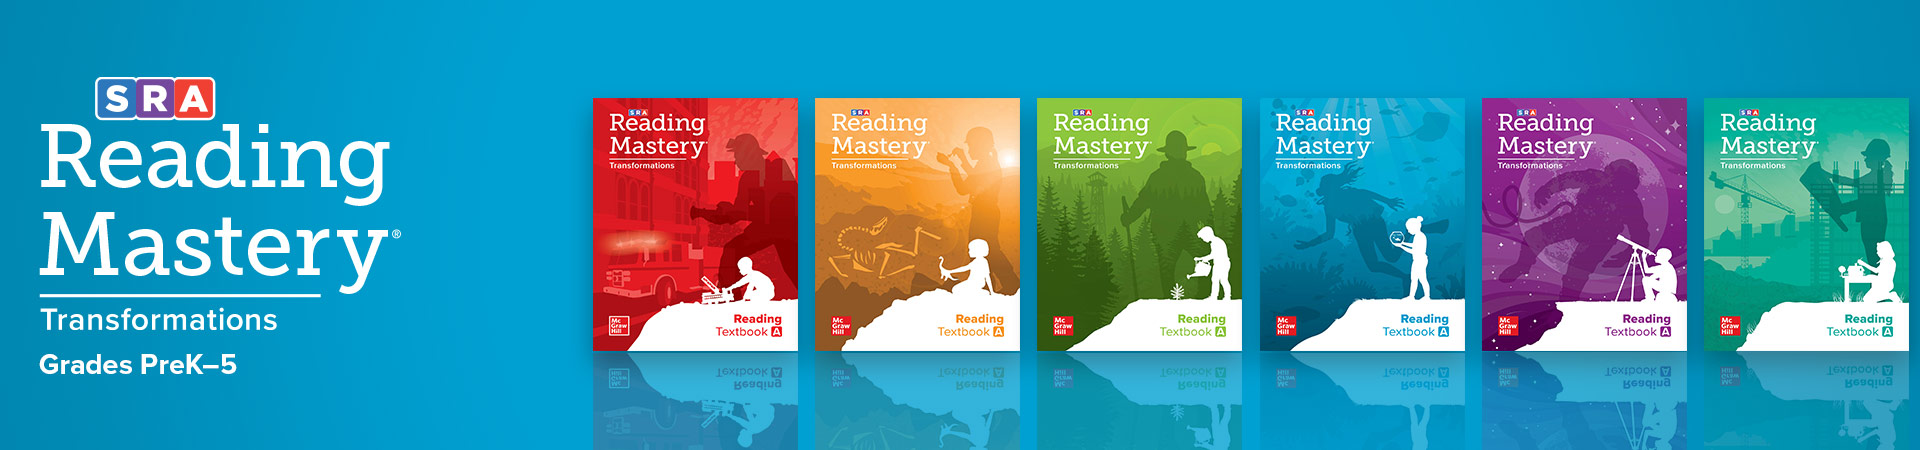 logo and textbook covers for reading mastery transformations reading intervention program